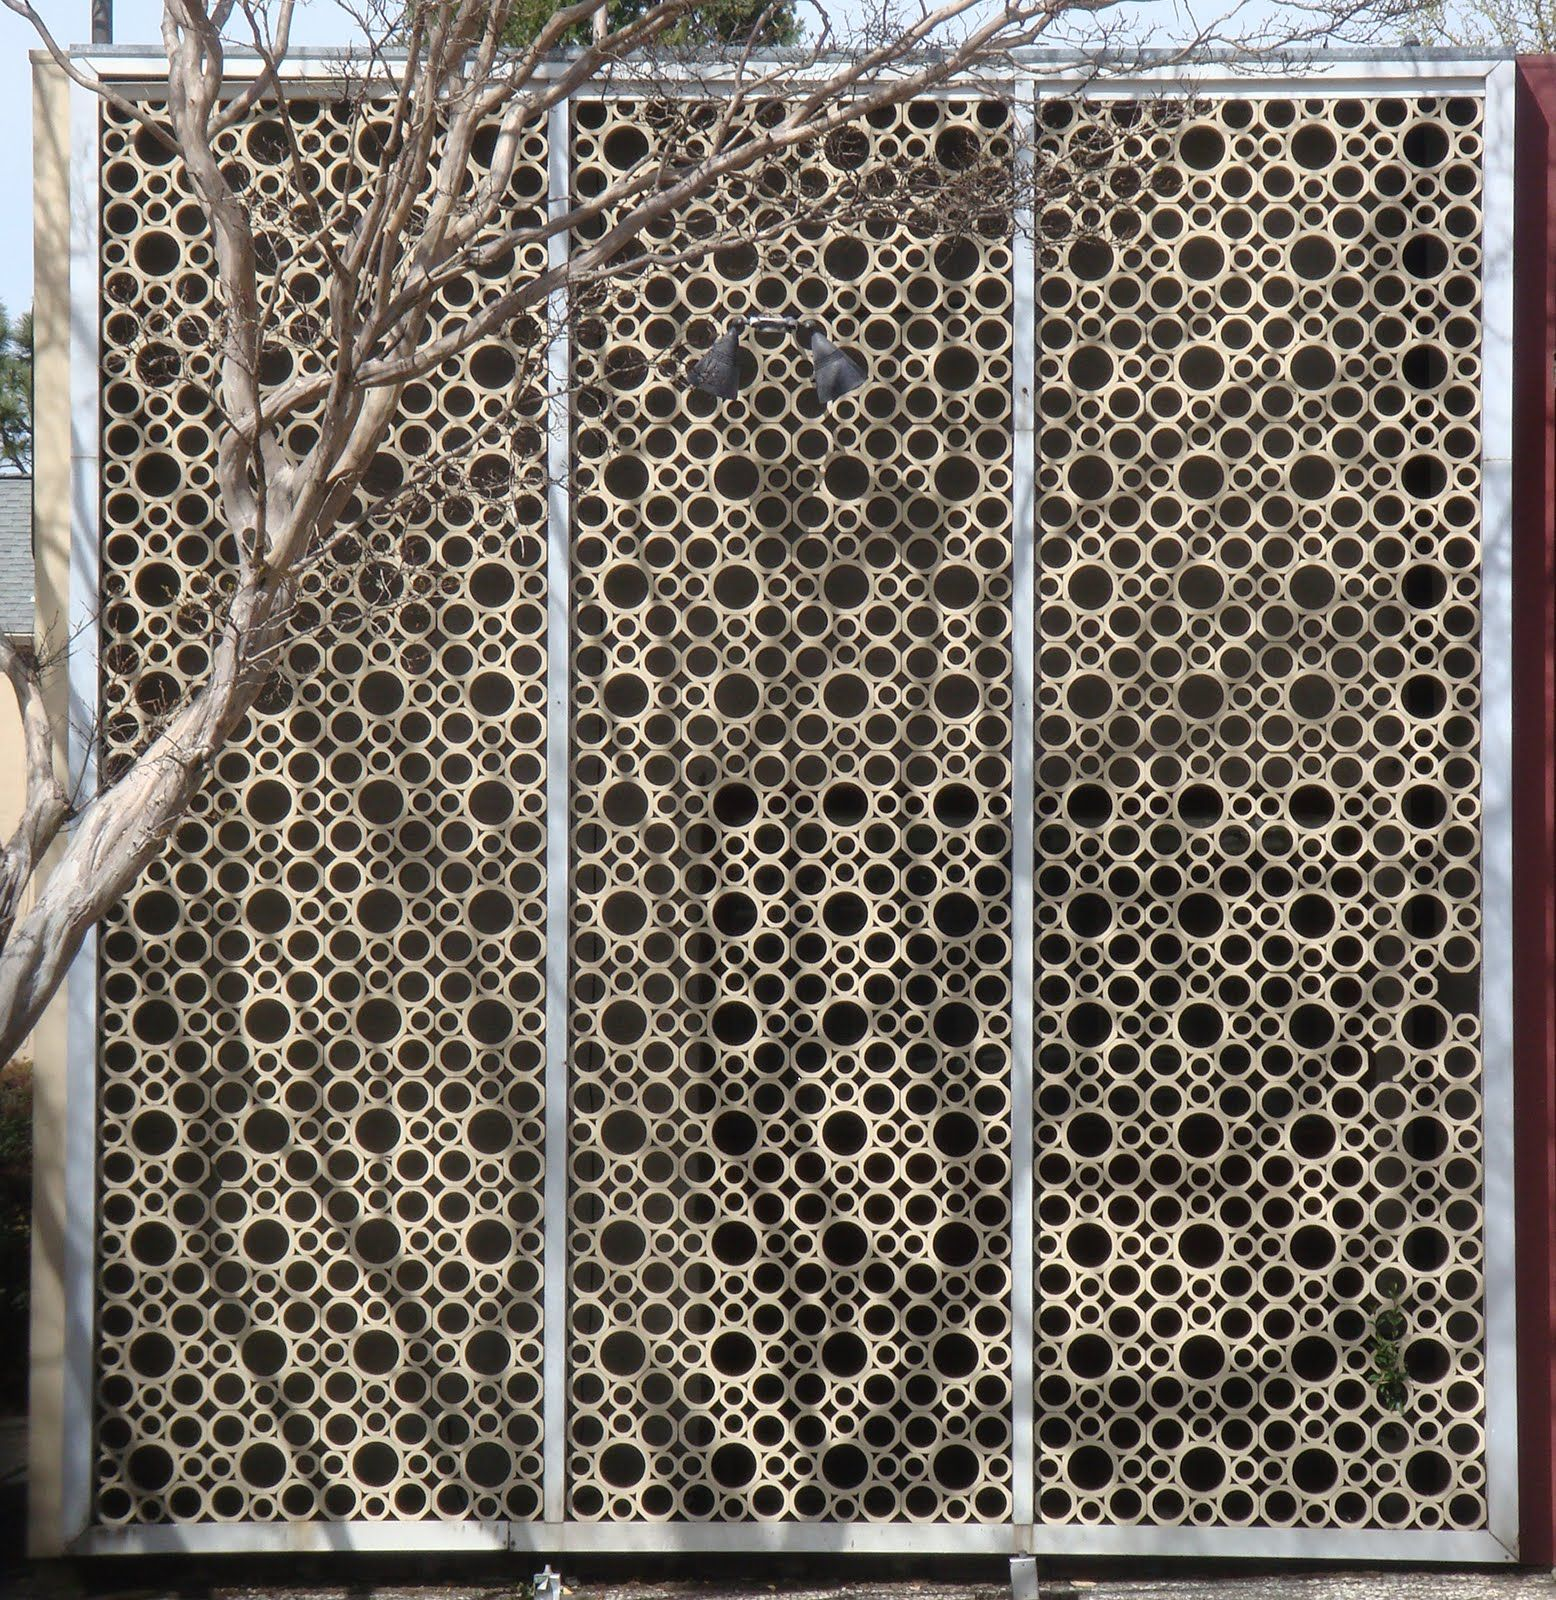 Decorative Block Wall decorative screens | mid century modern decorative screen block